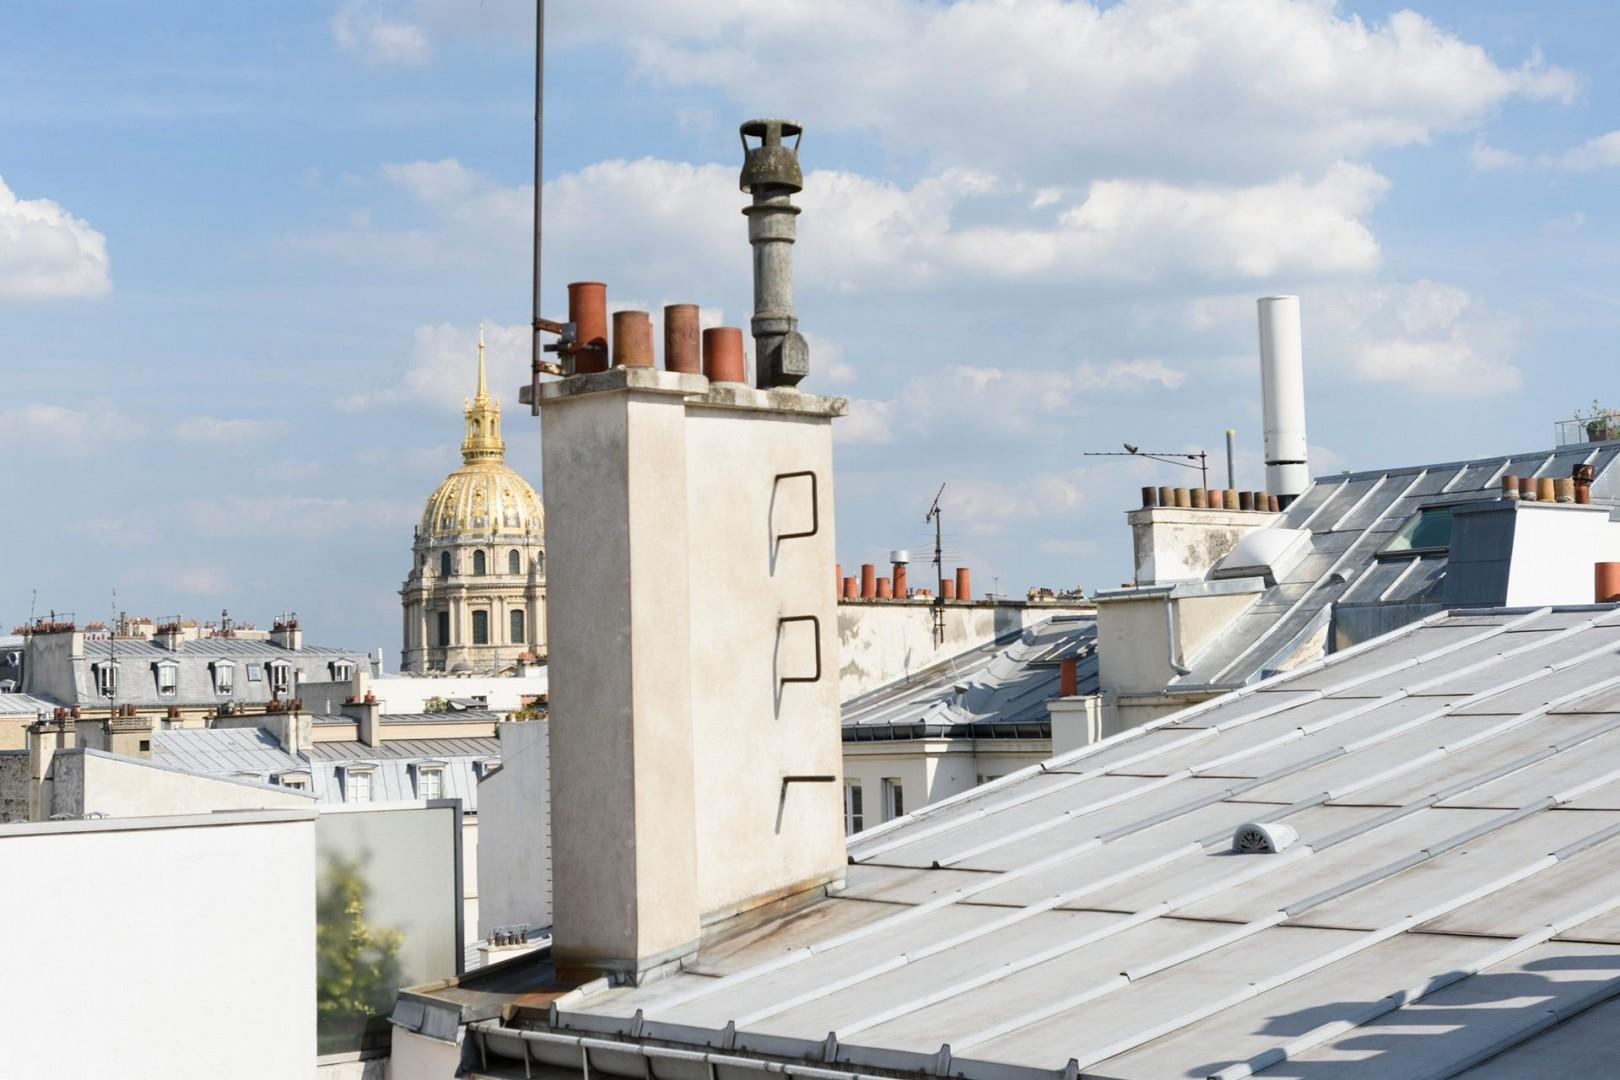 Enjoy the view of Parisian rooftops and Les Invalides.